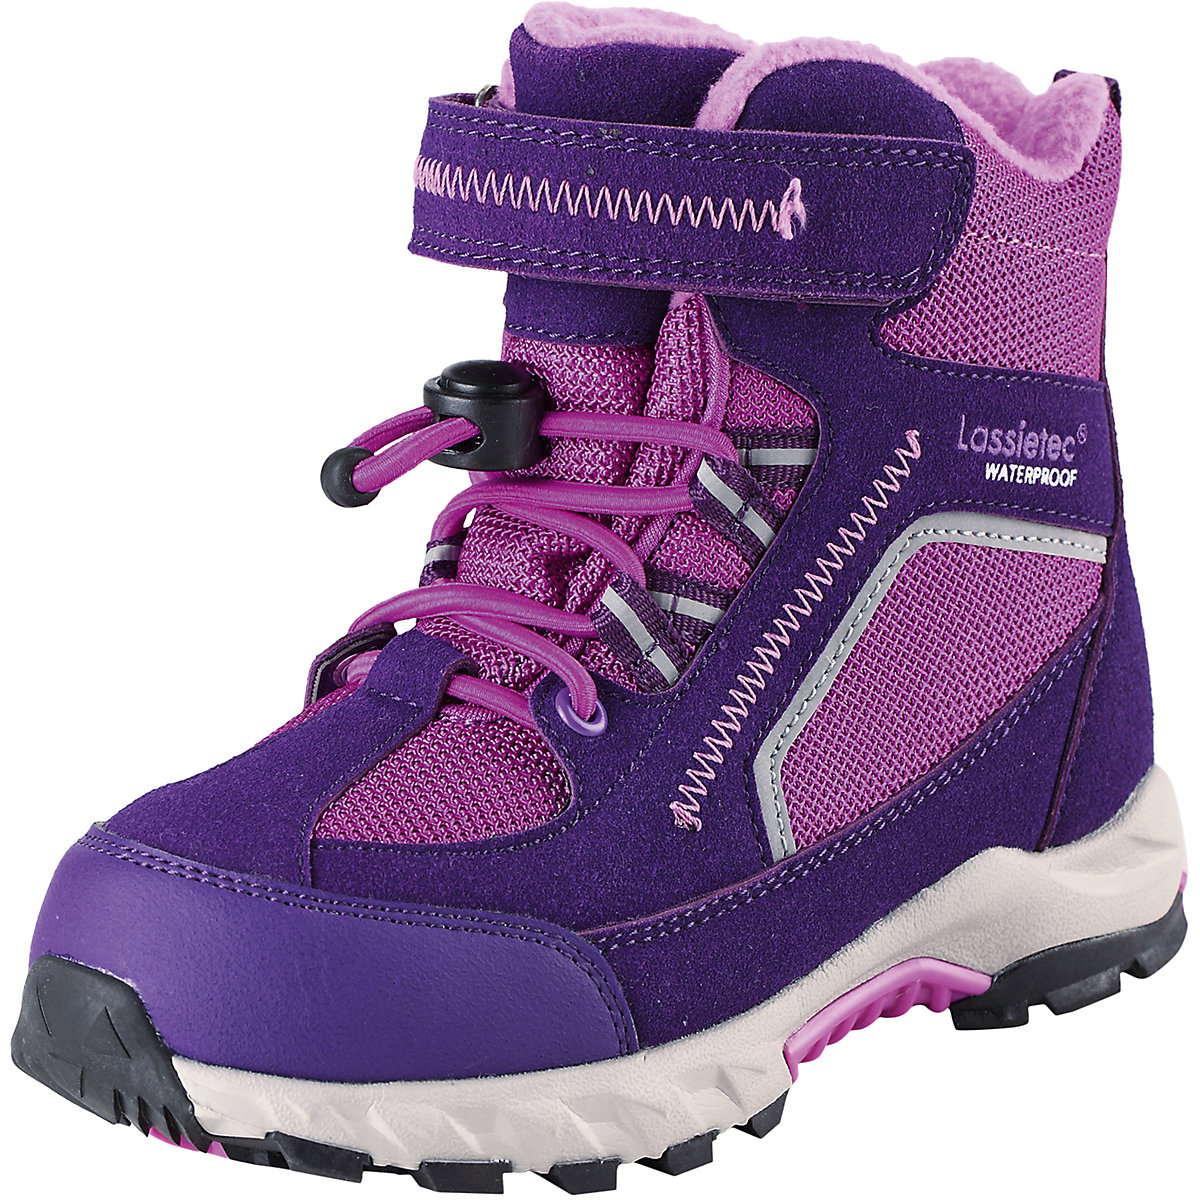 Boots LASSIE for girls 8622538 Valenki Uggi Winter shoes Children Kids